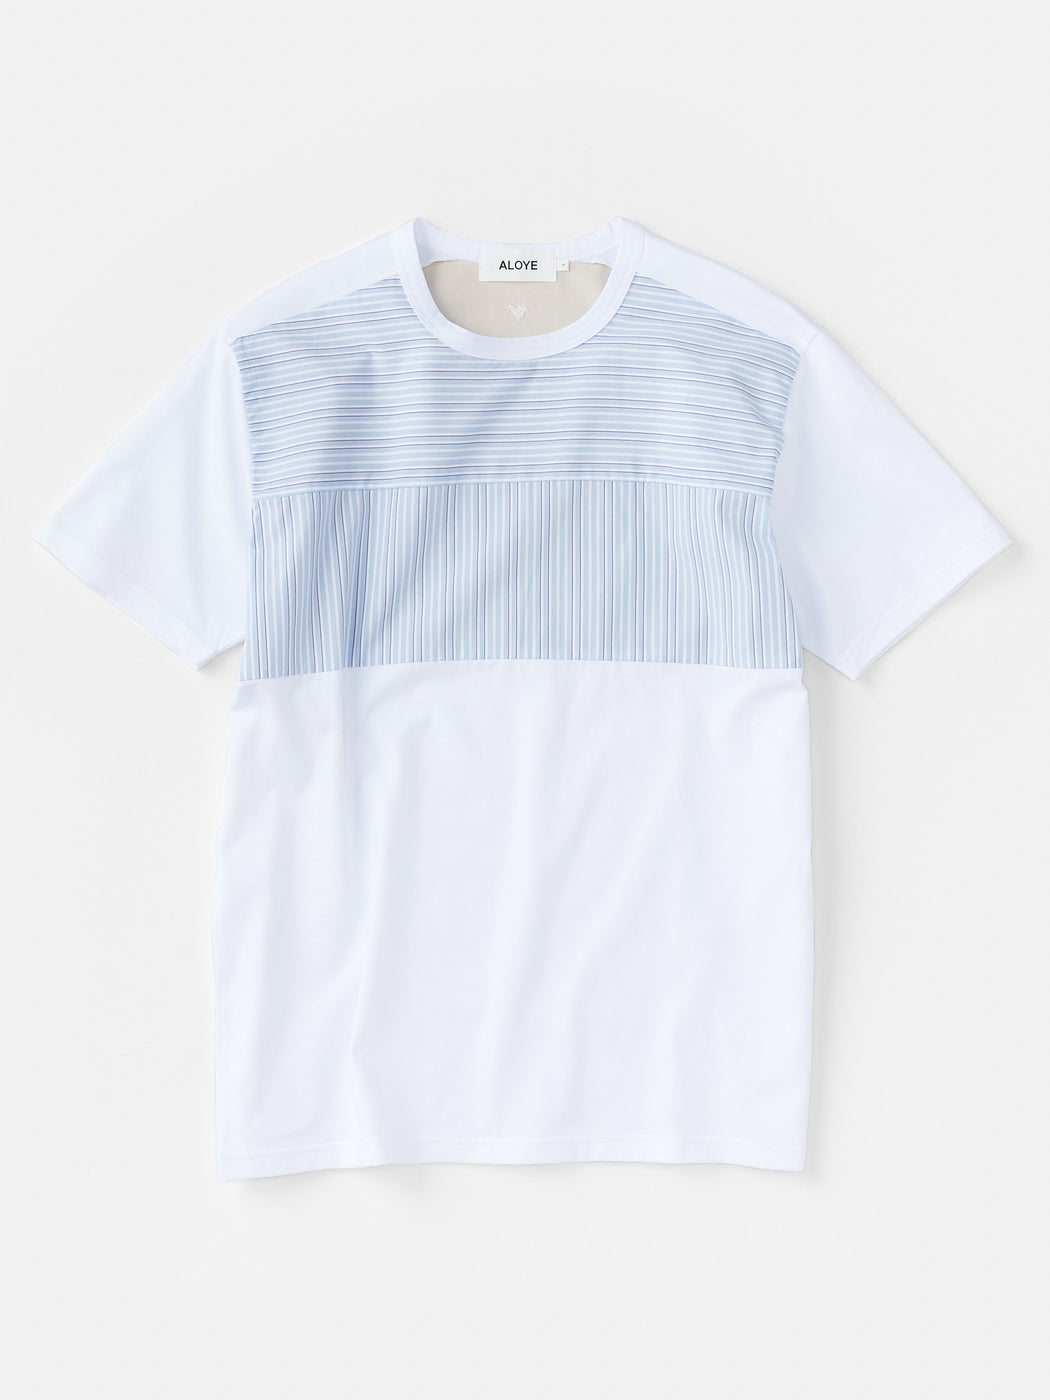 ALOYE Shirt Fabrics Men's Short Sleeve T-shirt White-Blue Stripe